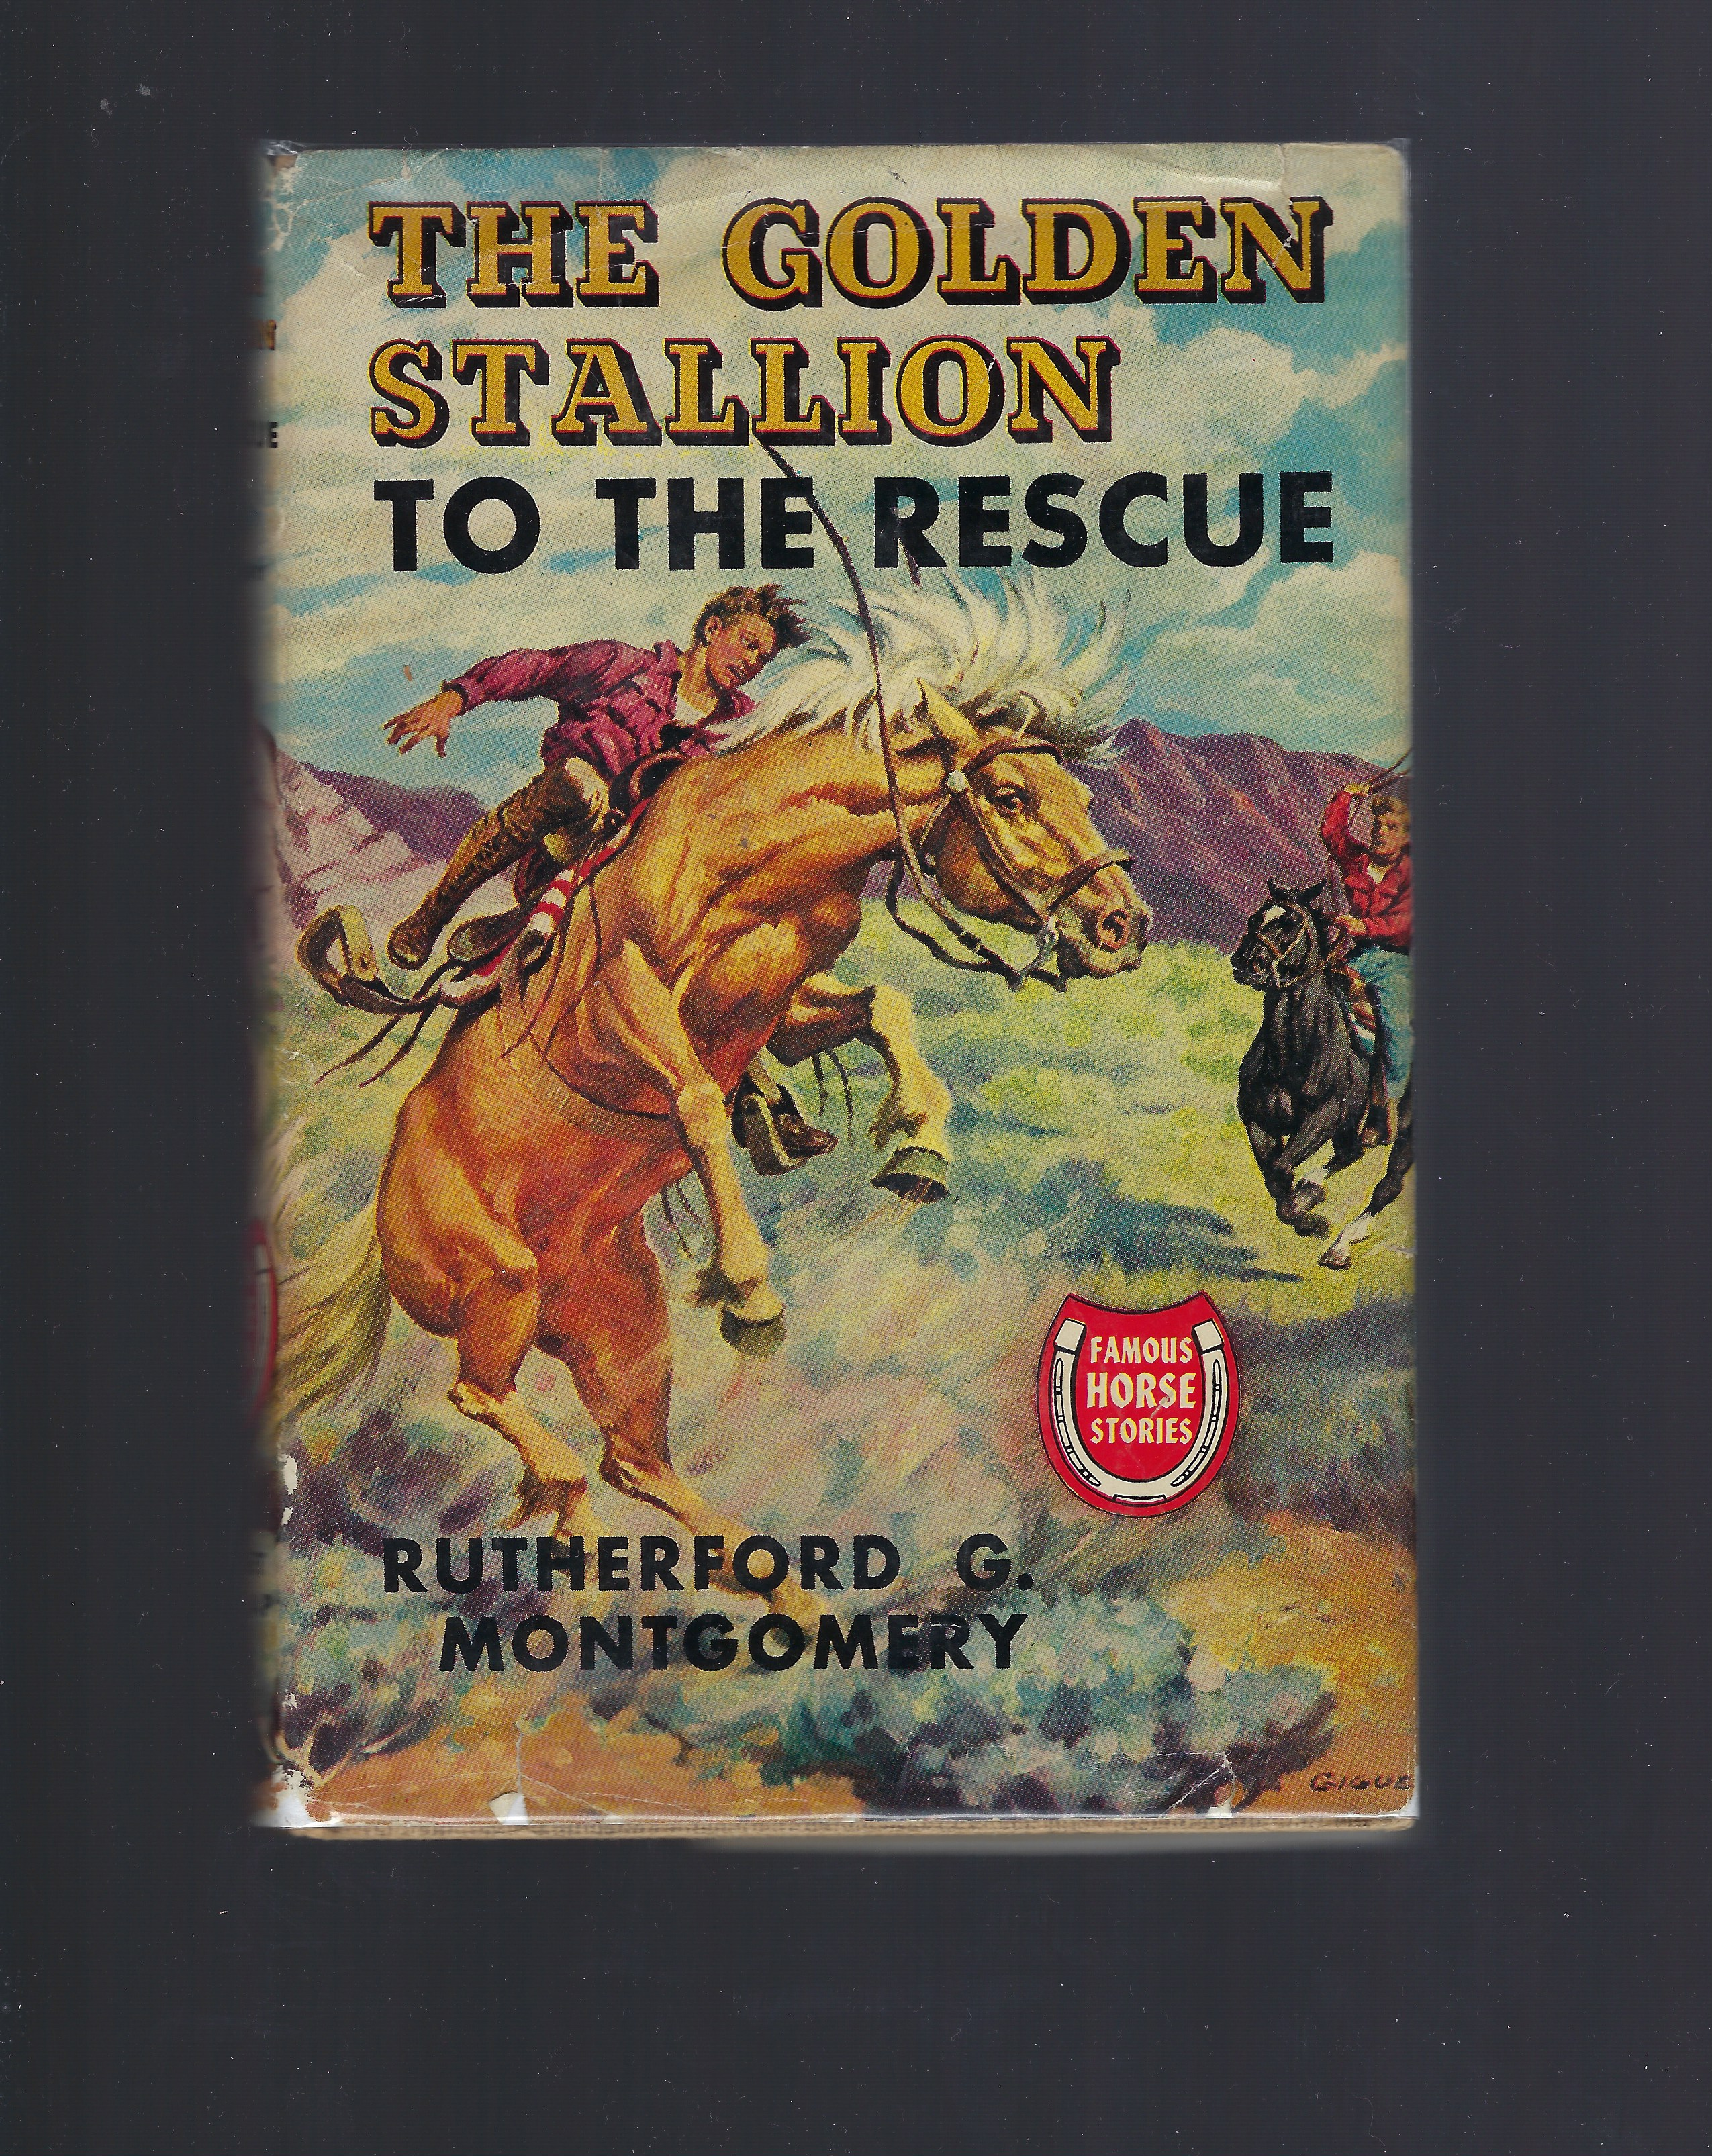 The Golden Stallion to the Rescue (Famous Horse Stories) HB/DJ, Montgomery, Rutherford G.